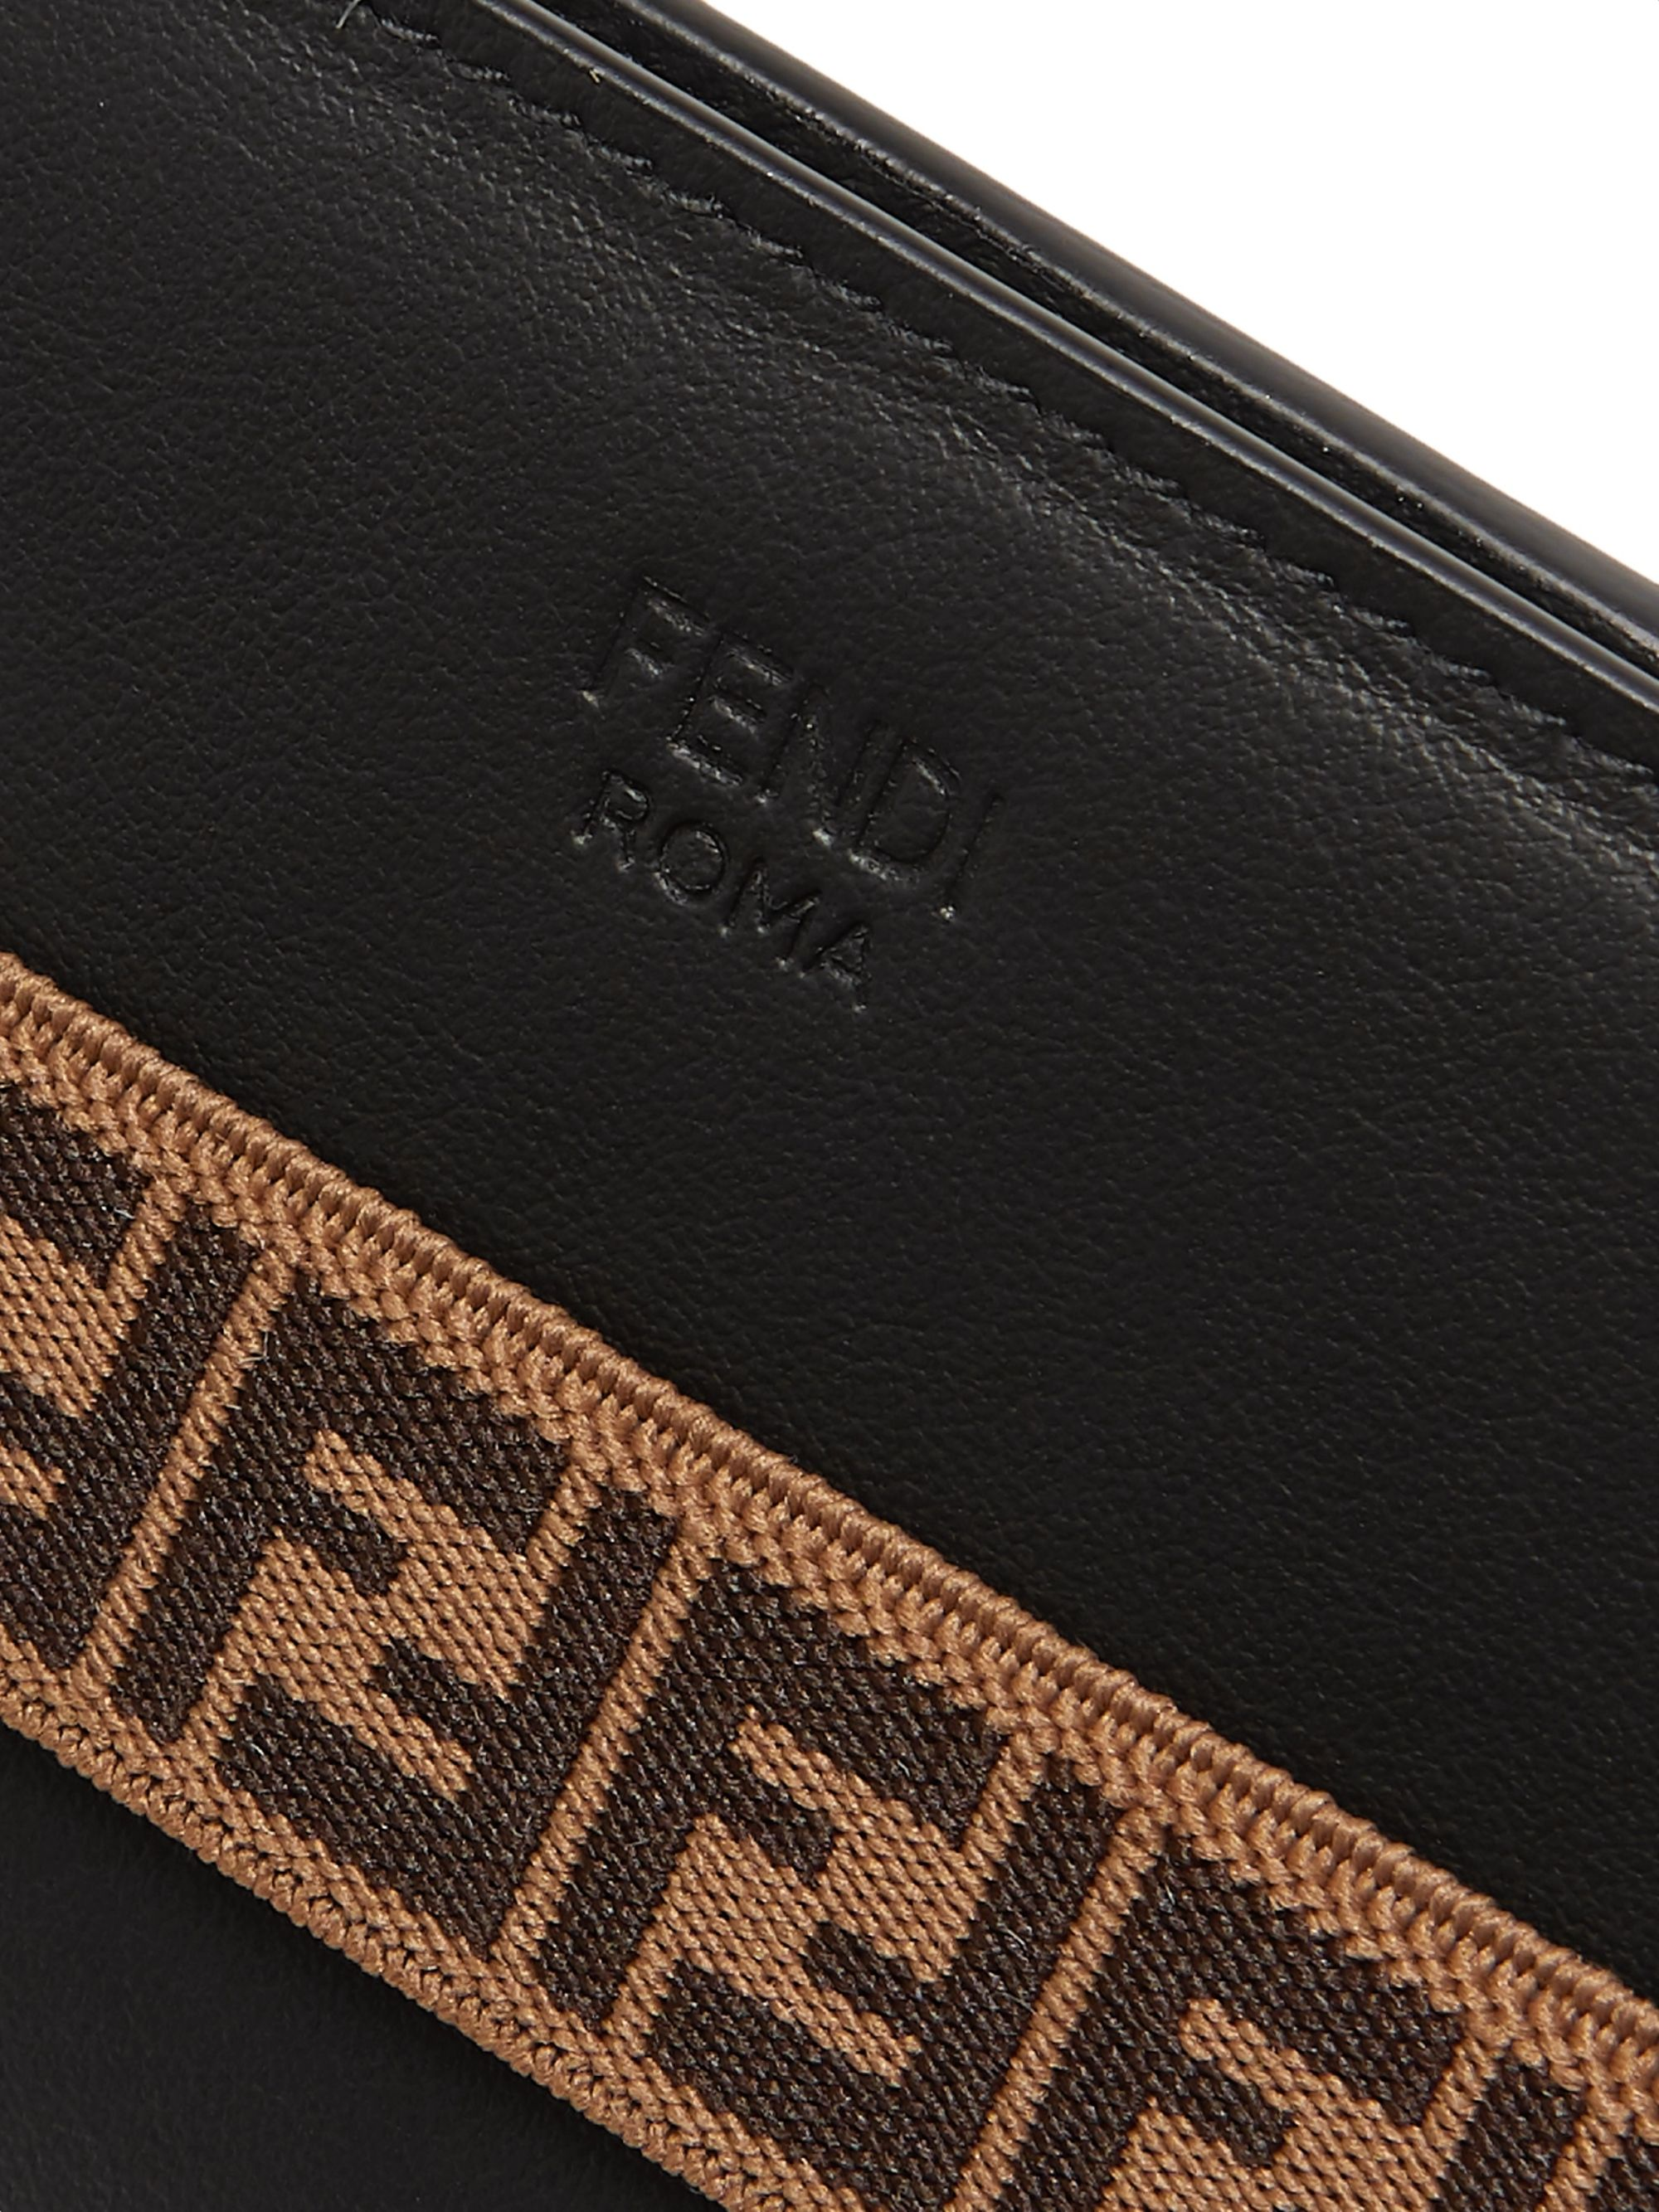 Fendi Logo-Jacquard Stretch Webbing-Trimmed Leather iPhone X Case